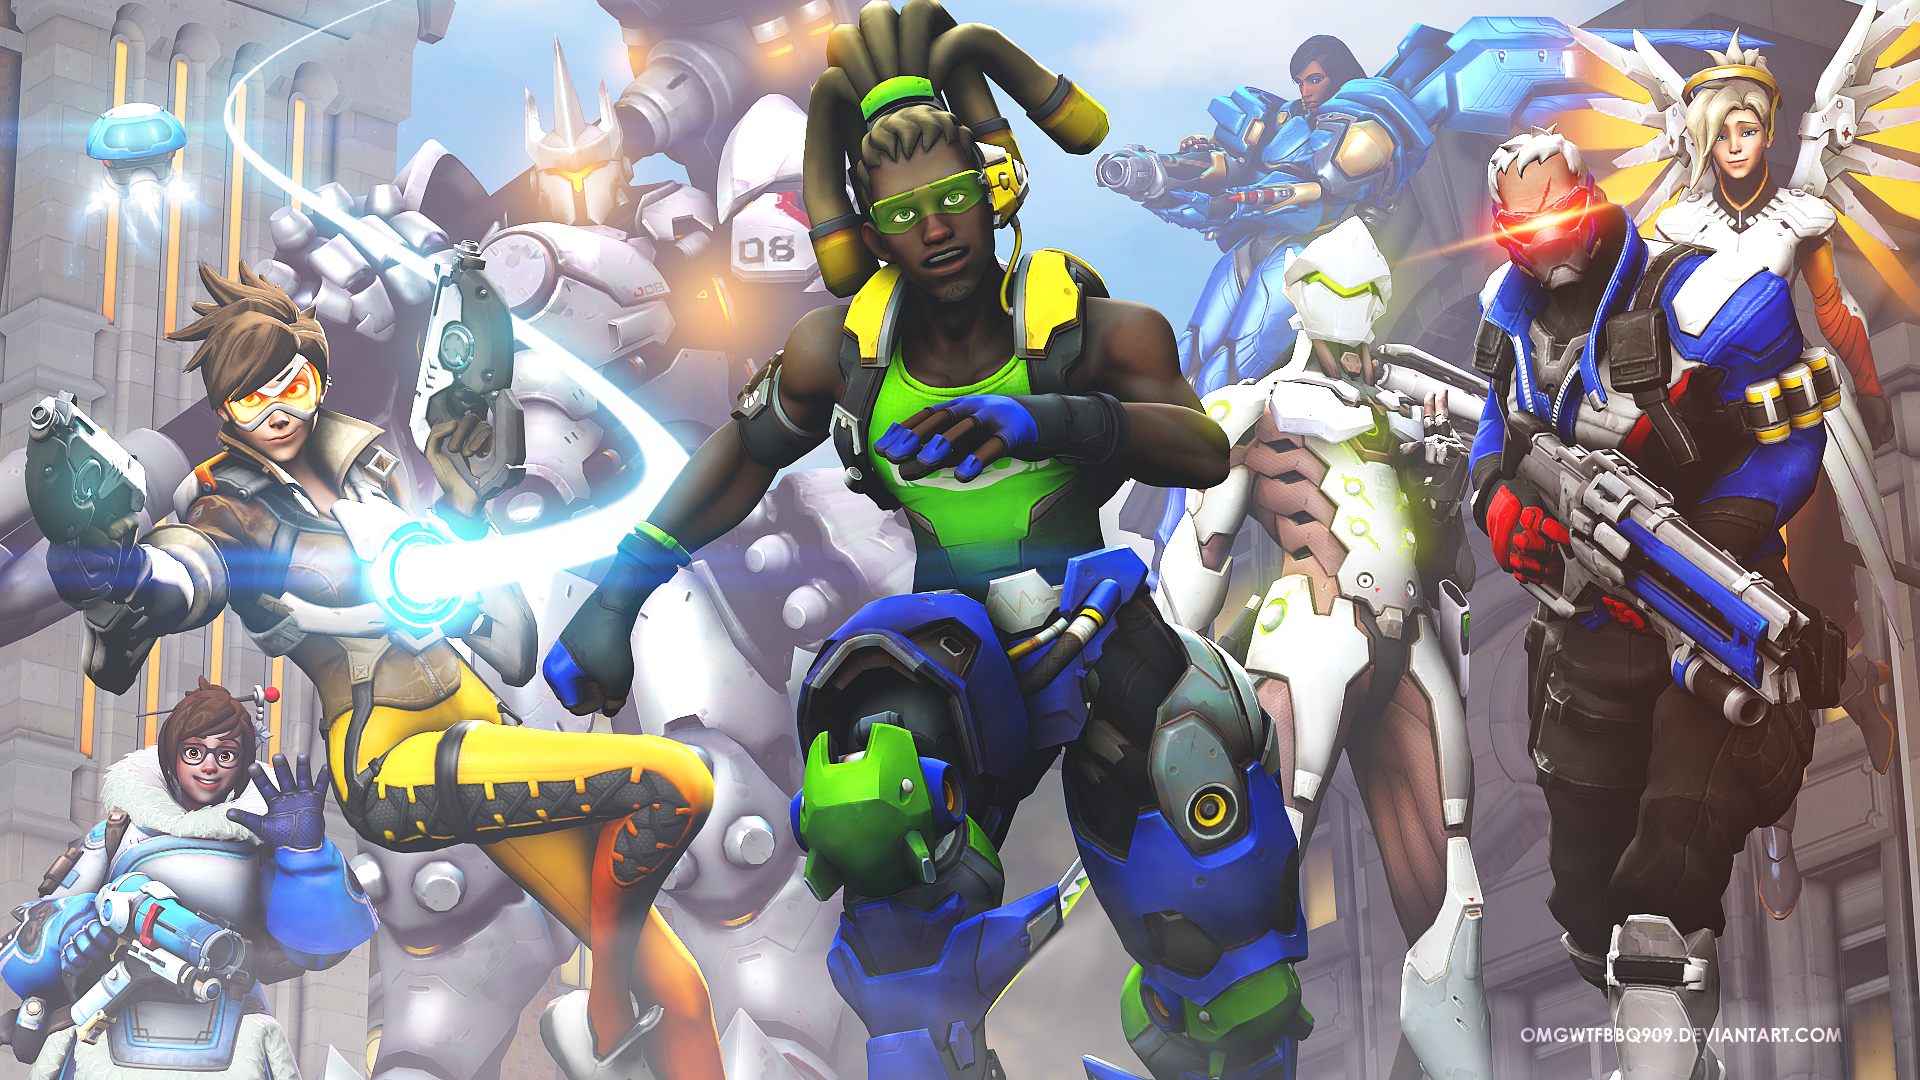 Overwatch Hd Wallpaper Hintergrund 1920x1080 Id 703913